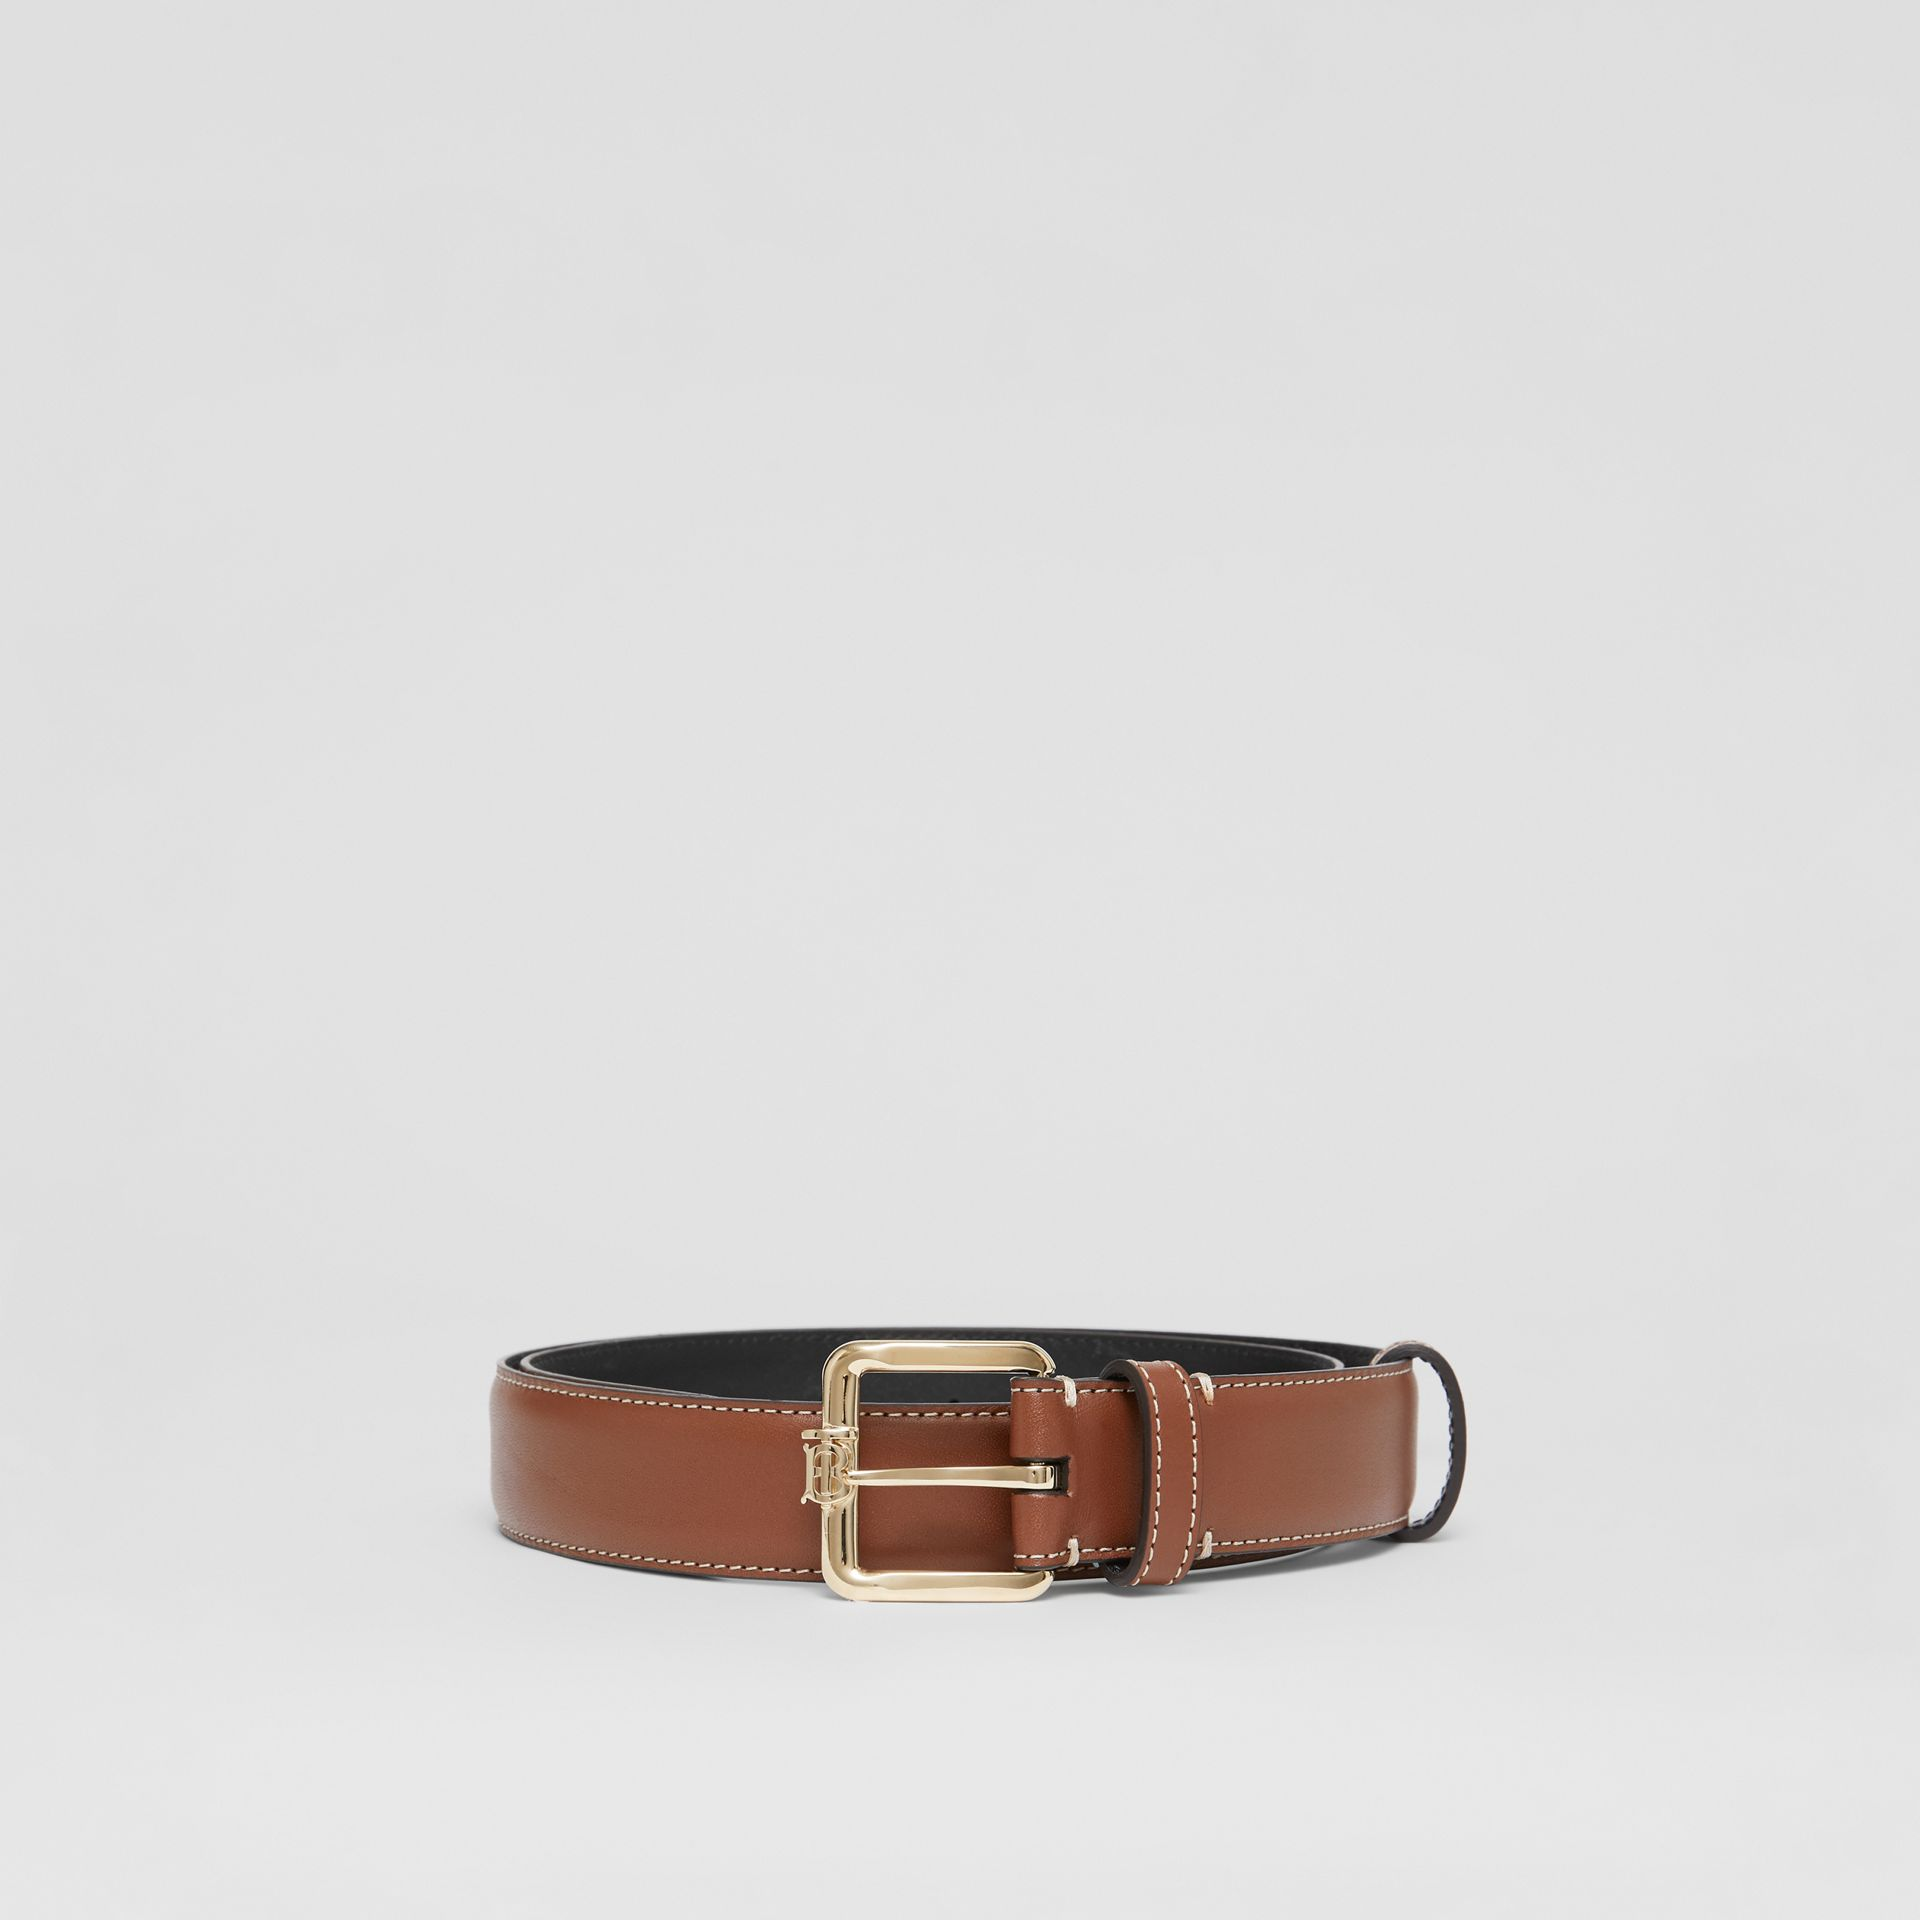 Monogram Motif Topstitched Leather Belt in Tan/light Gold - Women | Burberry - gallery image 3